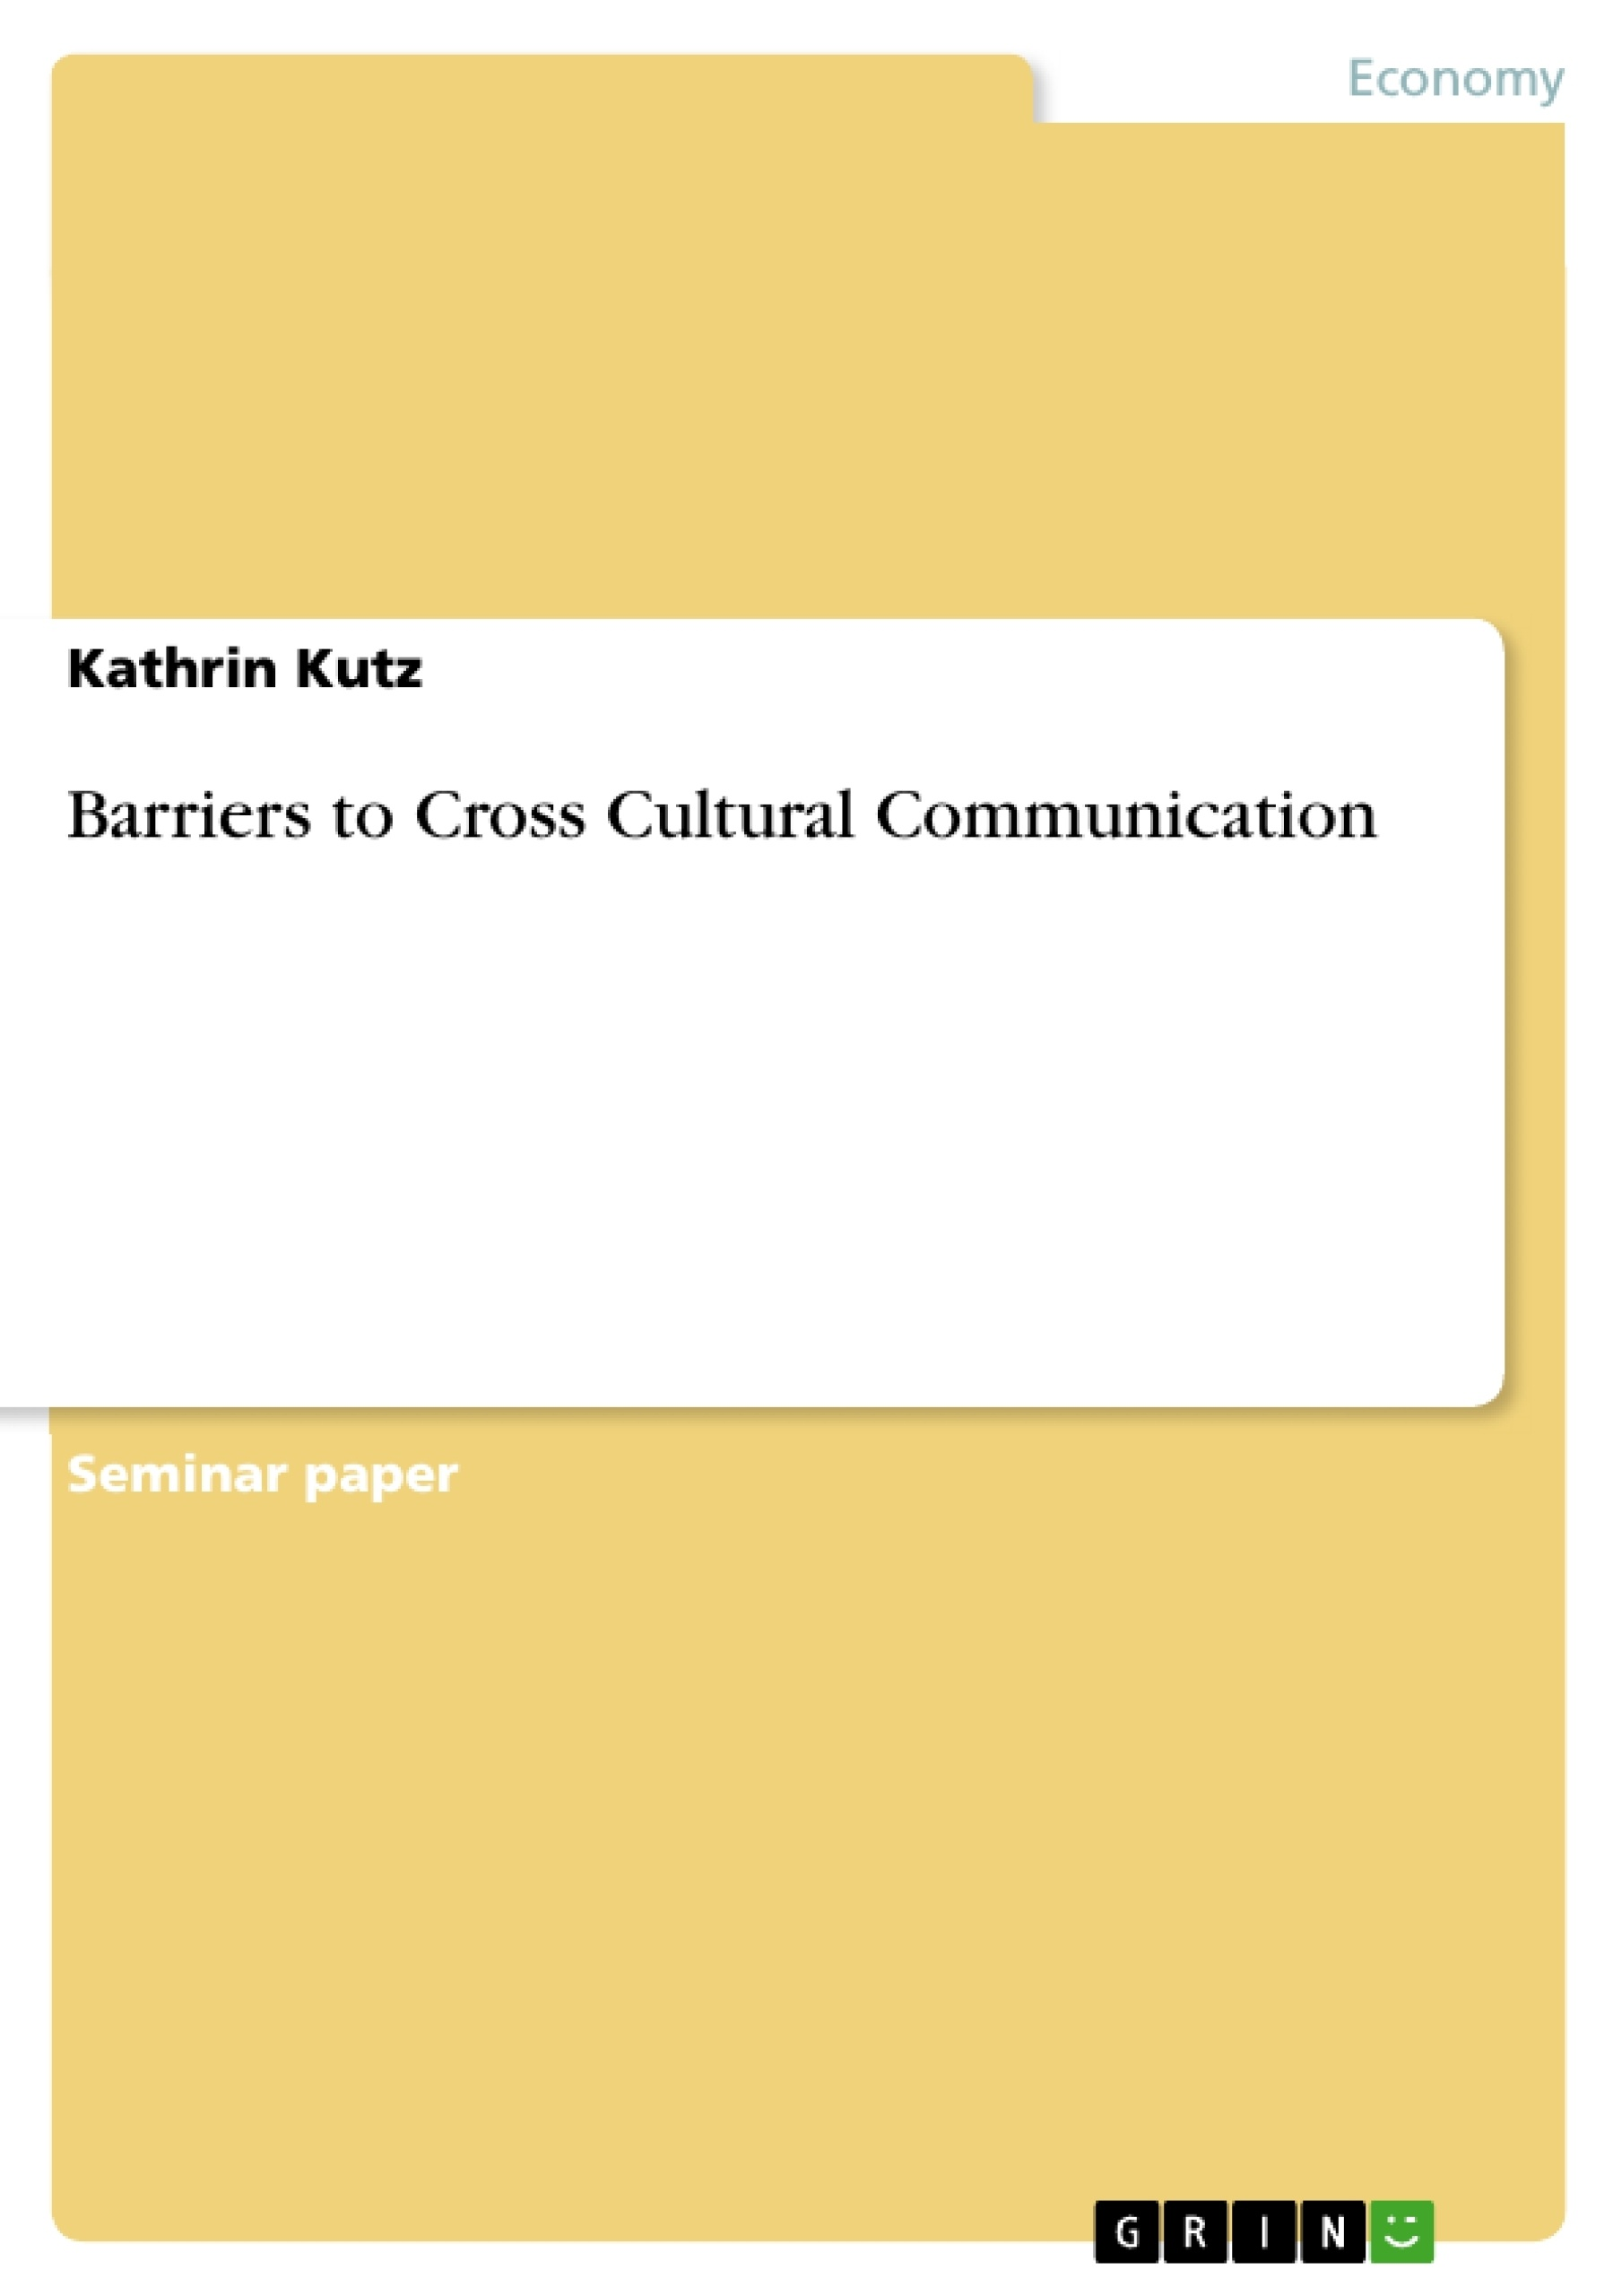 thesis on cross cultural communication In today's globalised and multicultural societies, cross-cultural communication is  common enough even so, it continues to be a challenge, both for people who.